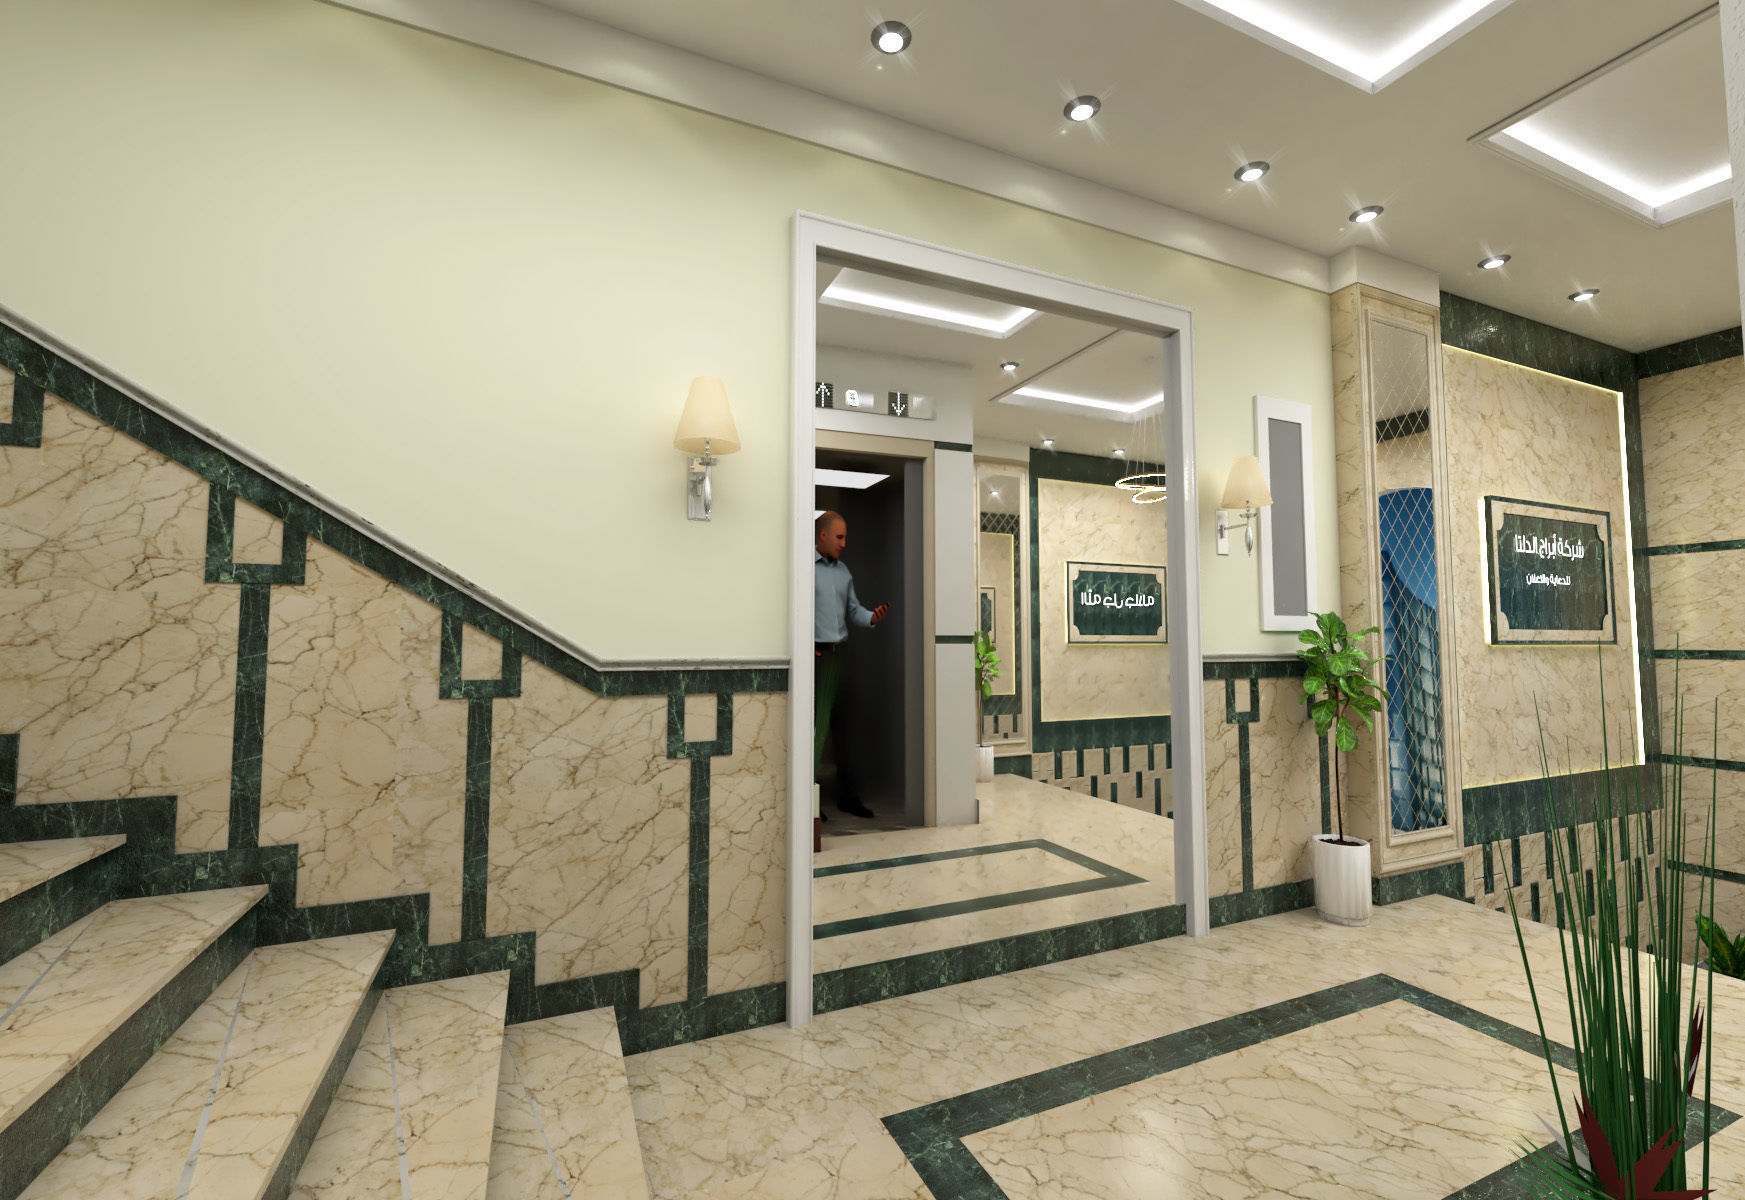 Residential building entrance interior scene | 3D model